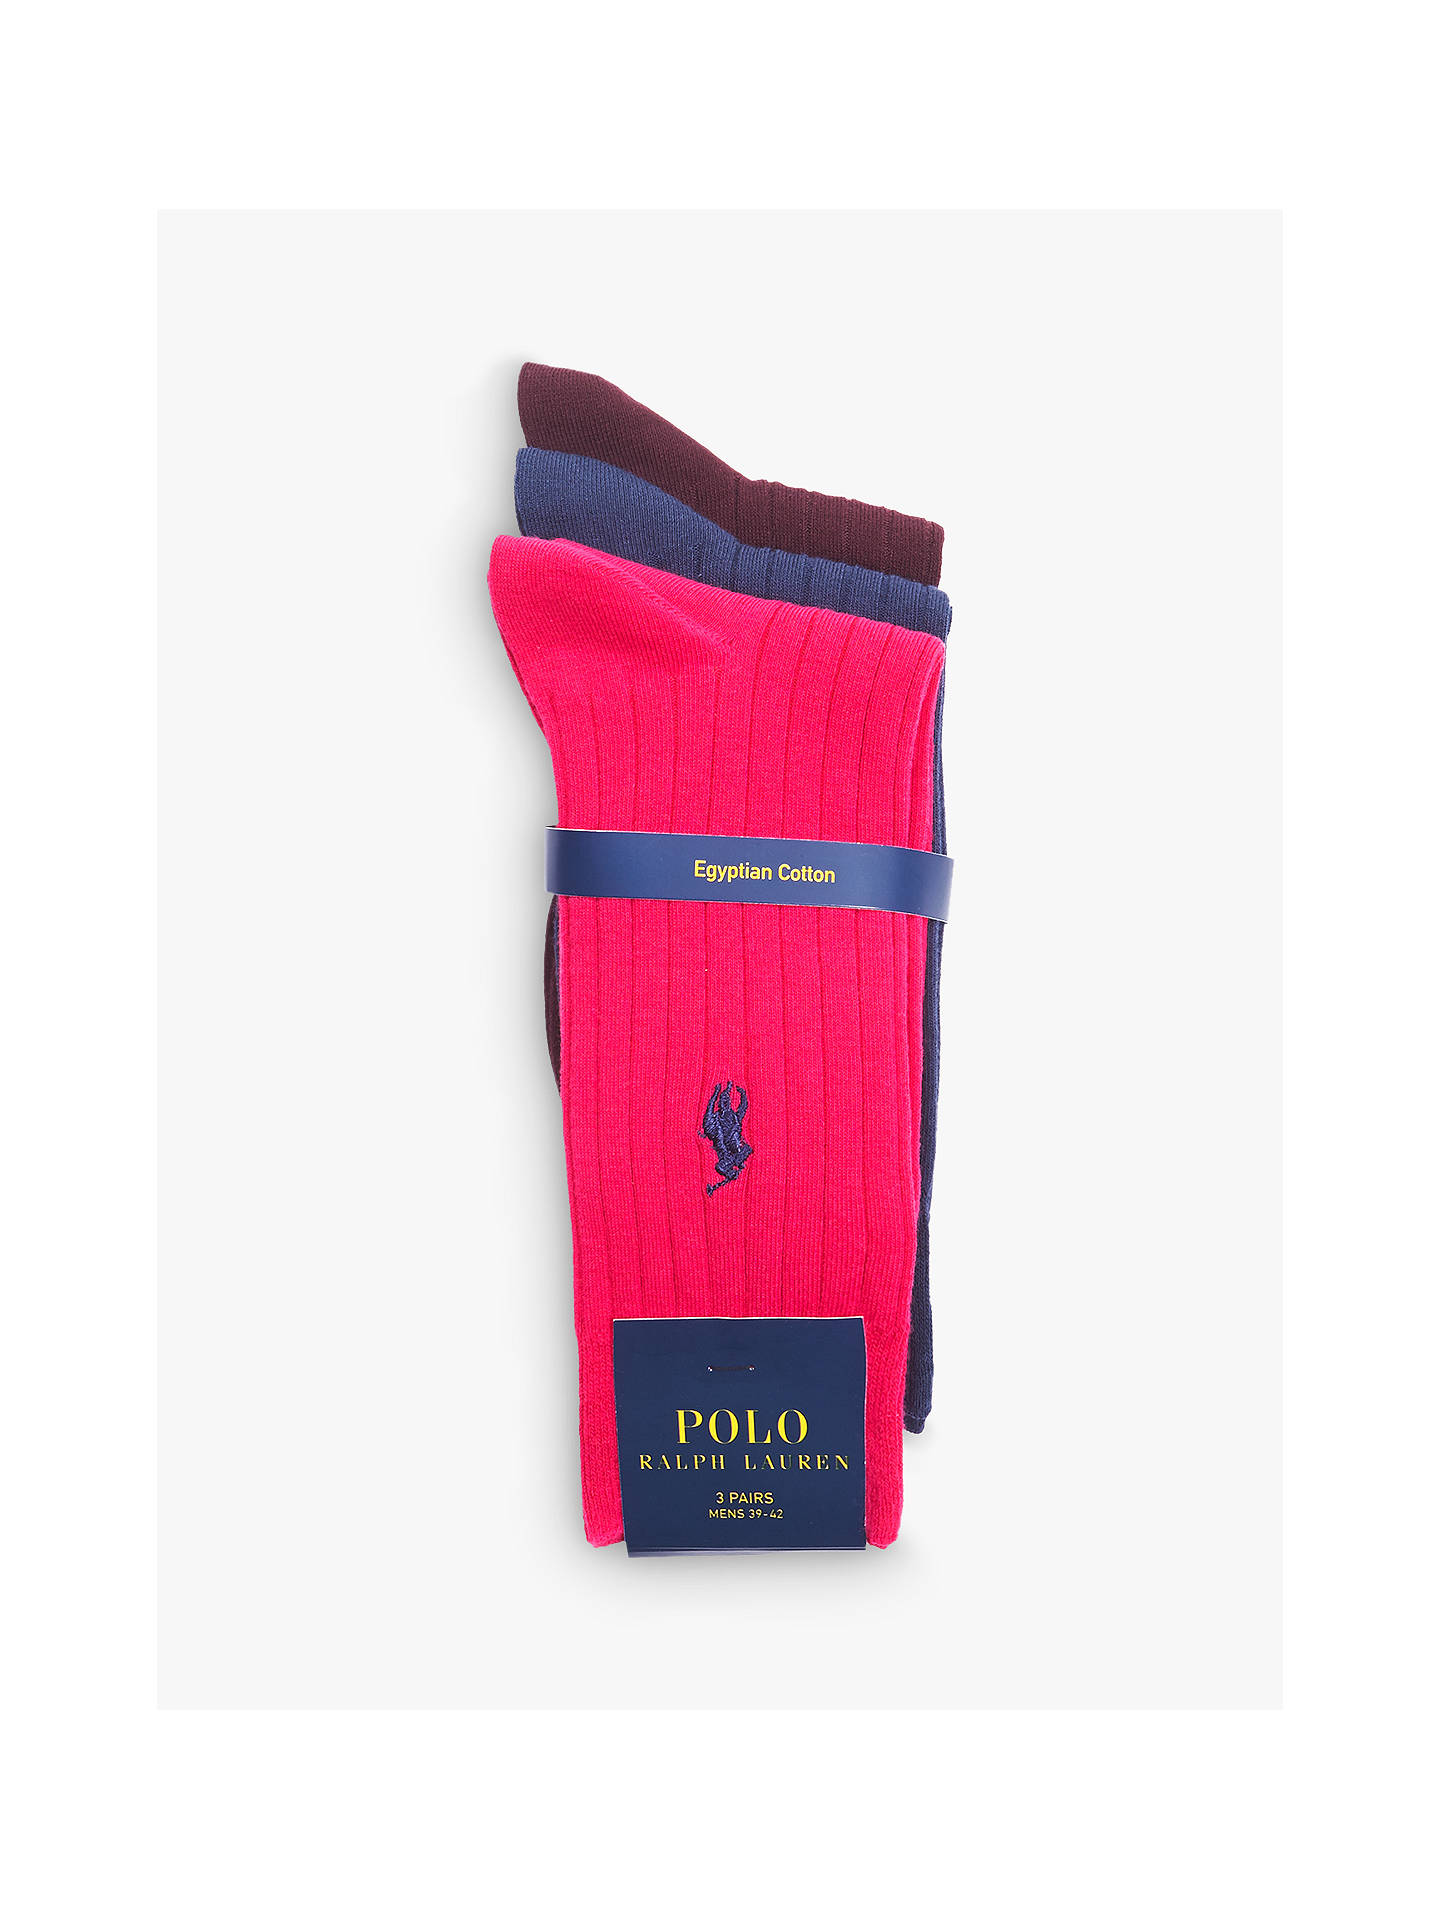 BuyPolo Ralph Lauren Egyptian Cotton Blend Socks, Pack of 3, Multi, 9-12 Online at johnlewis.com